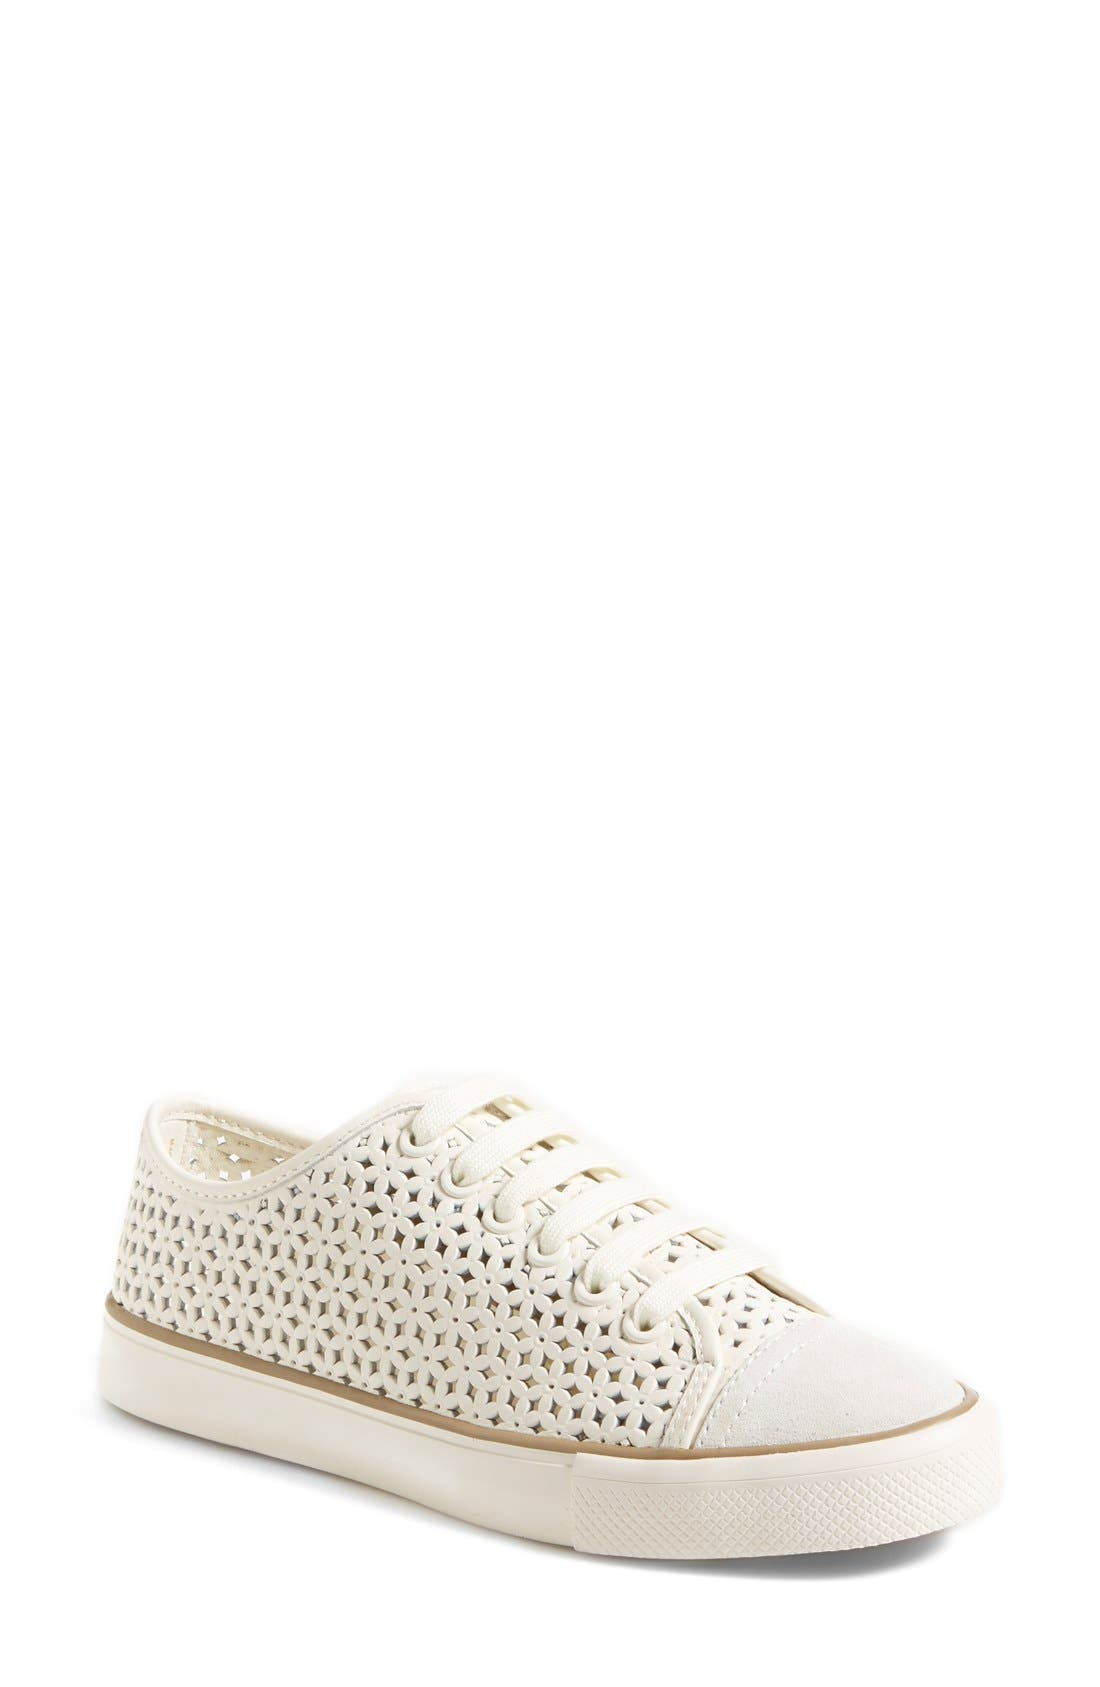 'Daisy' Perforated Sneaker,                         Main,                         color, 104